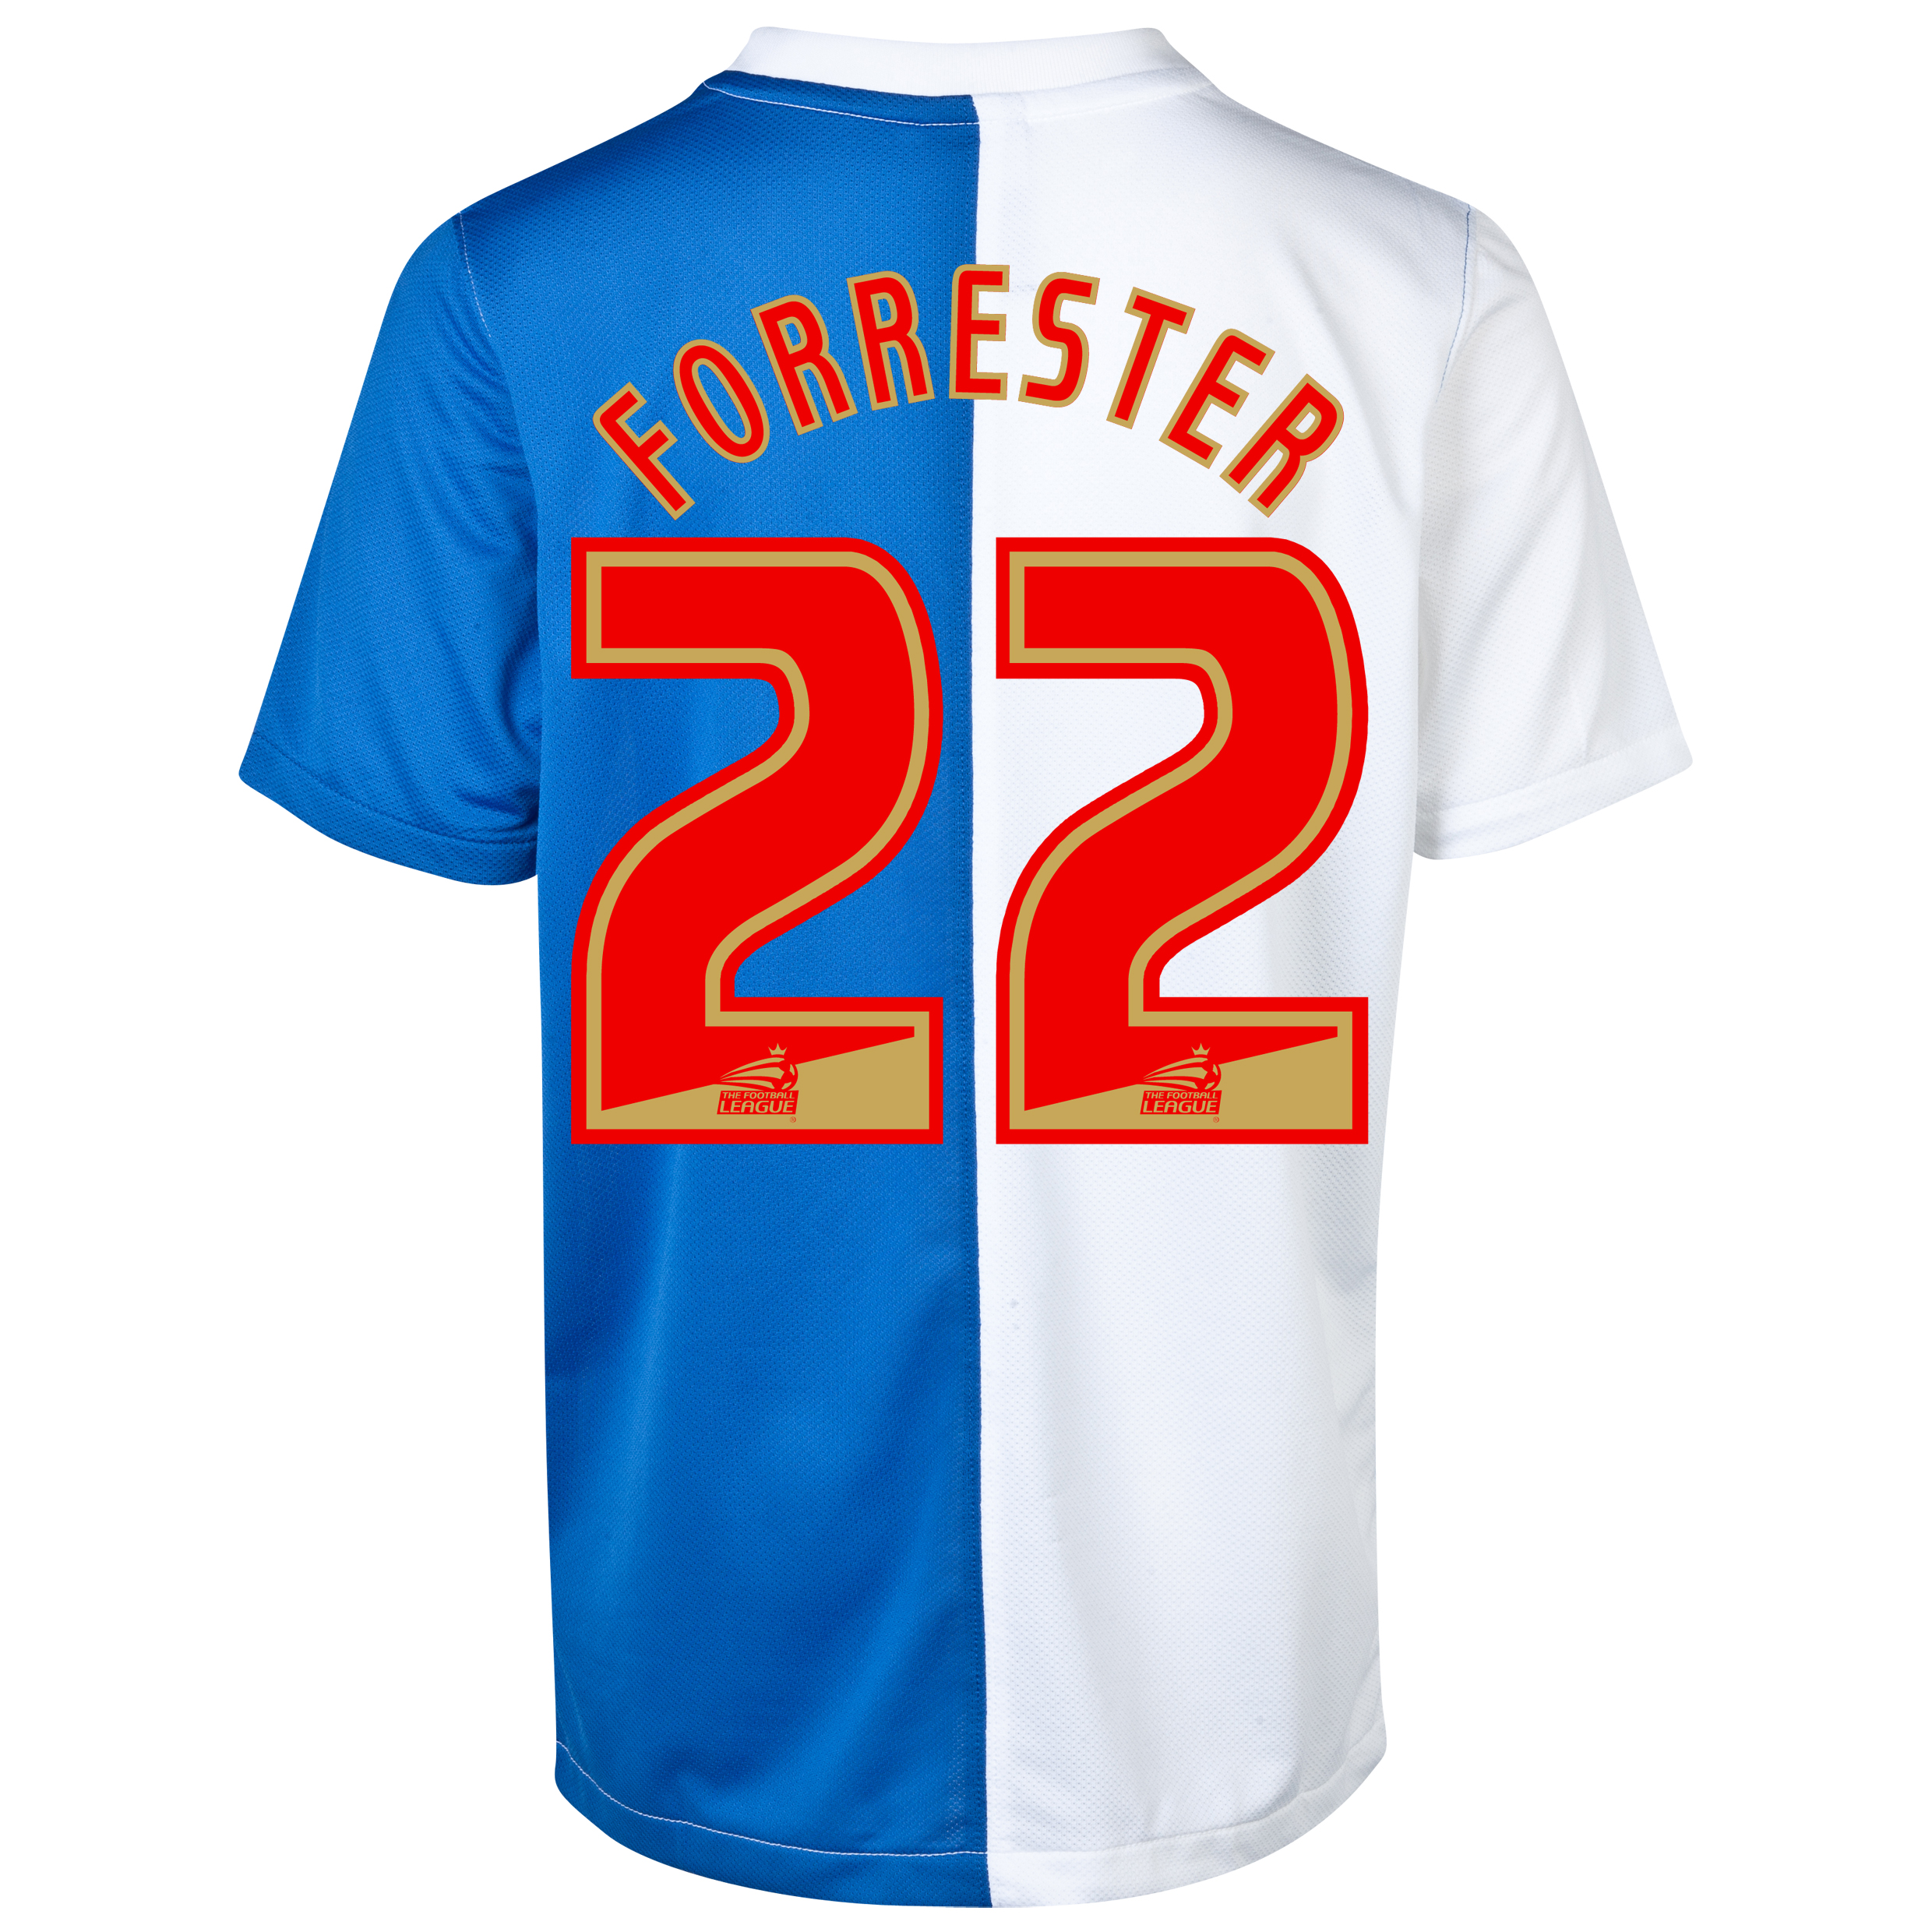 Blackburn Rovers Home Shirt 2013/14 - Kids with Forrester 22 printing